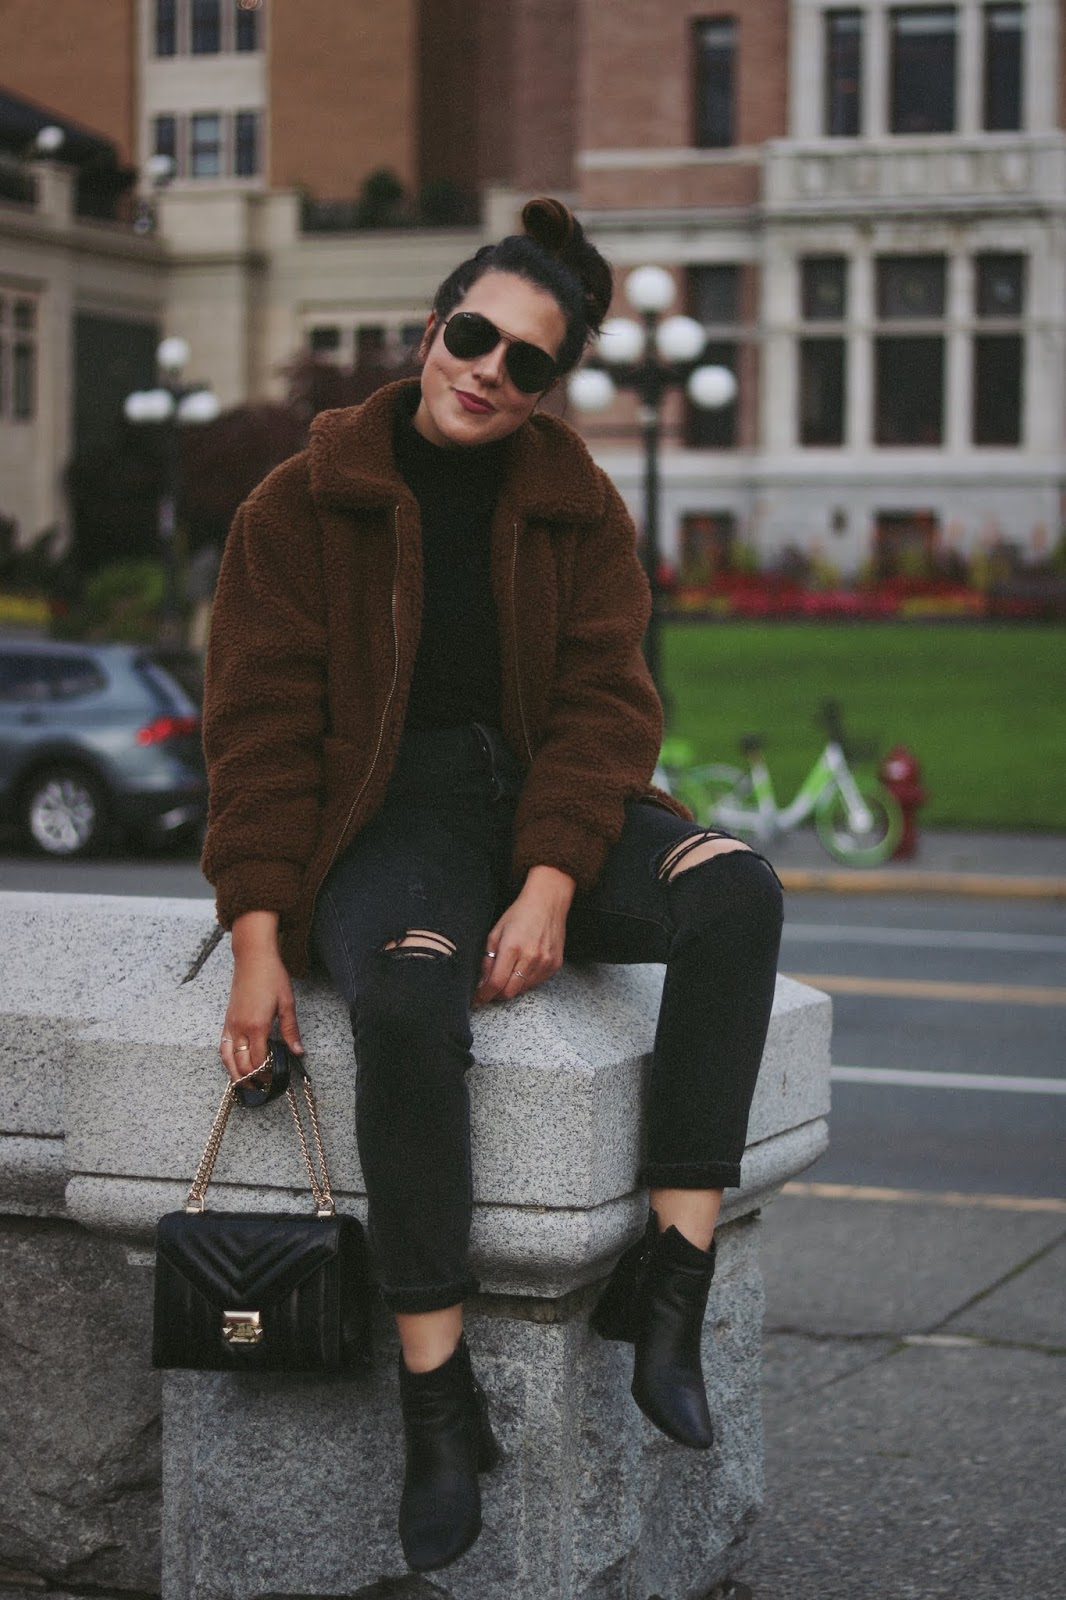 Teddy Bear Coat outfit vancouver fashion blogger garage levis wedgie victoria empress hotel